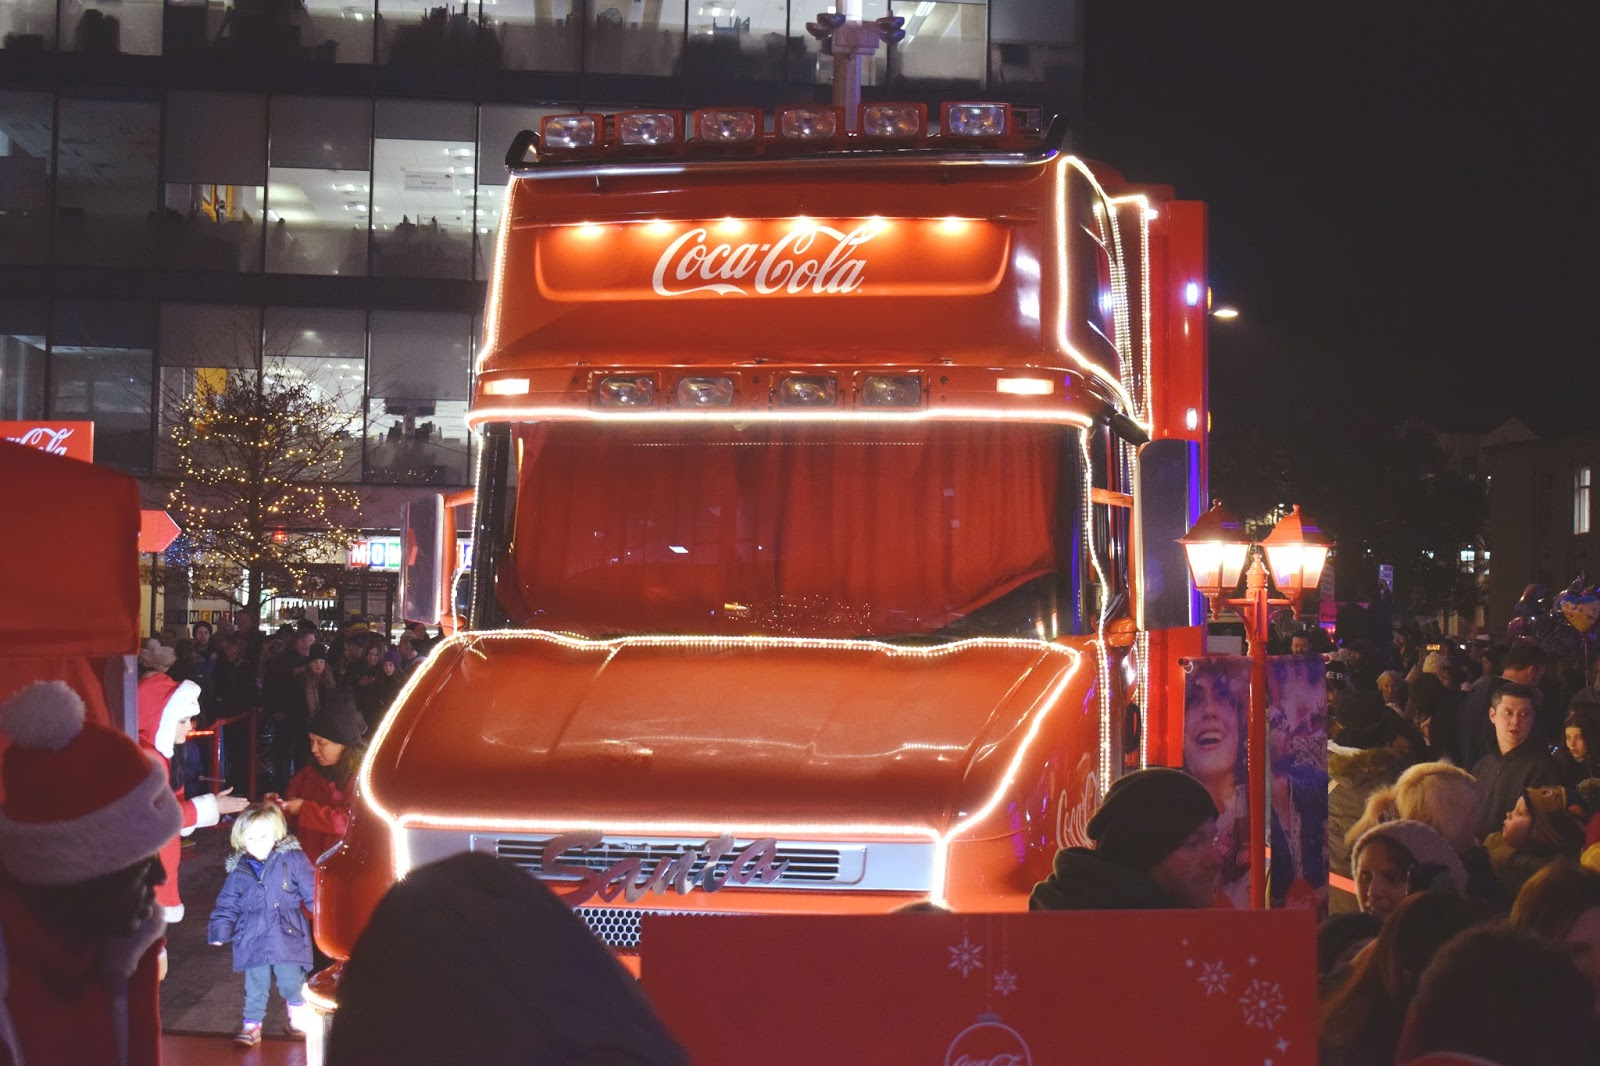 lebellelavie - The Coca-Cola Truck came to Southampton